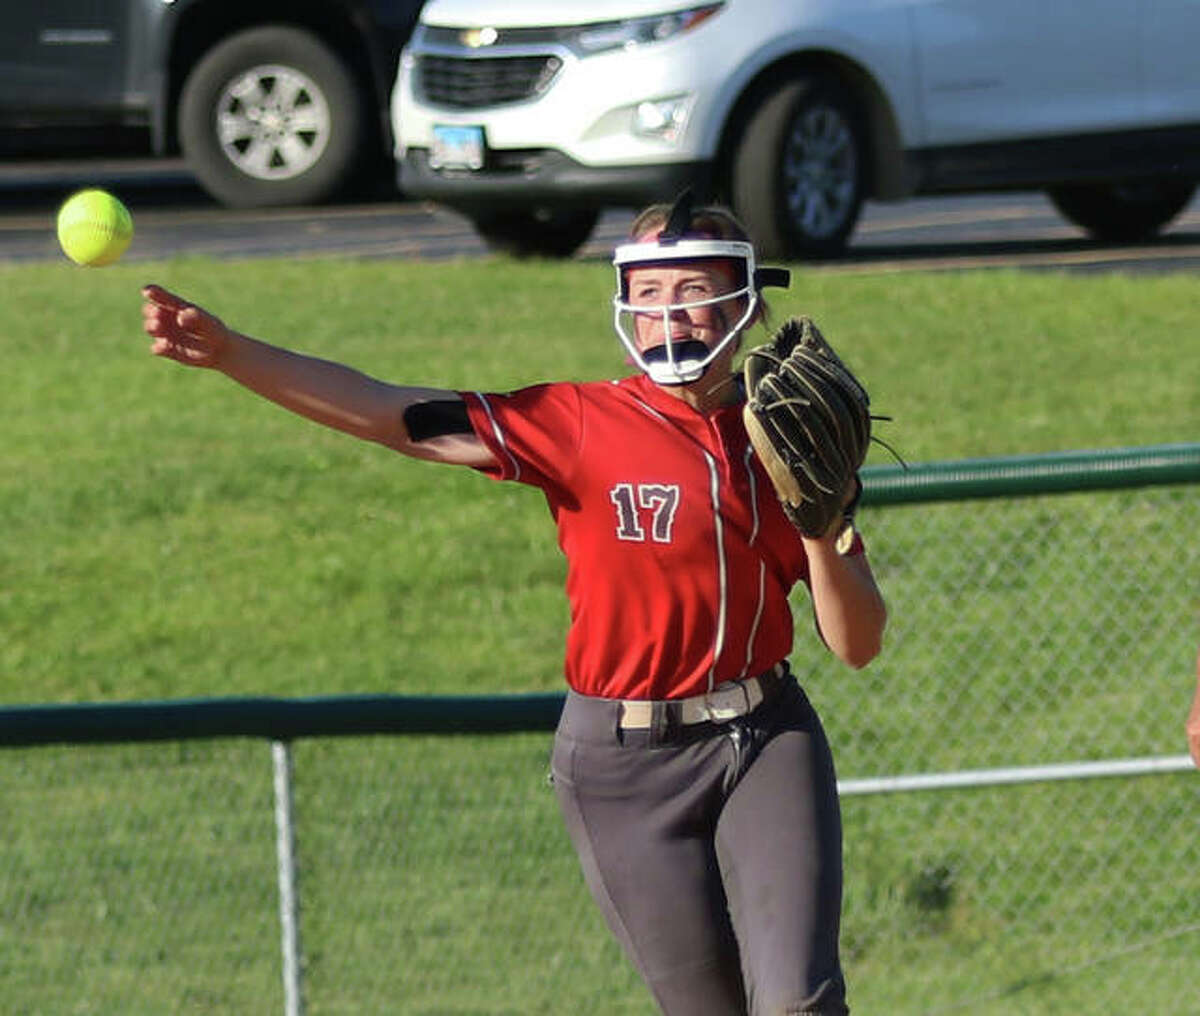 Alton shortstop Alissa Sauls throws to first for an out in a game earlier this month in Godfrey. The Redbirds were in Collinsville on Tuesday and lost a key SWC game to the Kahoks.